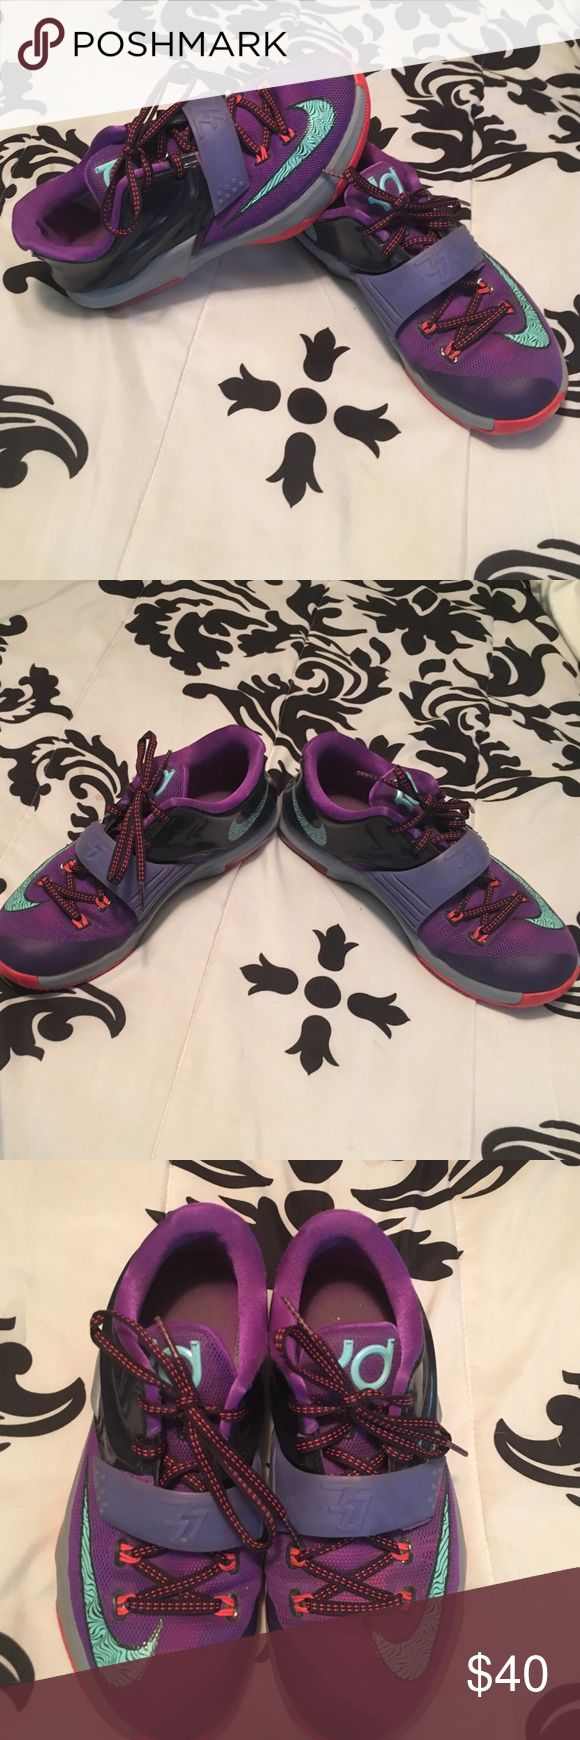 Nike KD Sneakers Great athletic sneaker. Very comfortable and durable Nike Shoes Sneakers